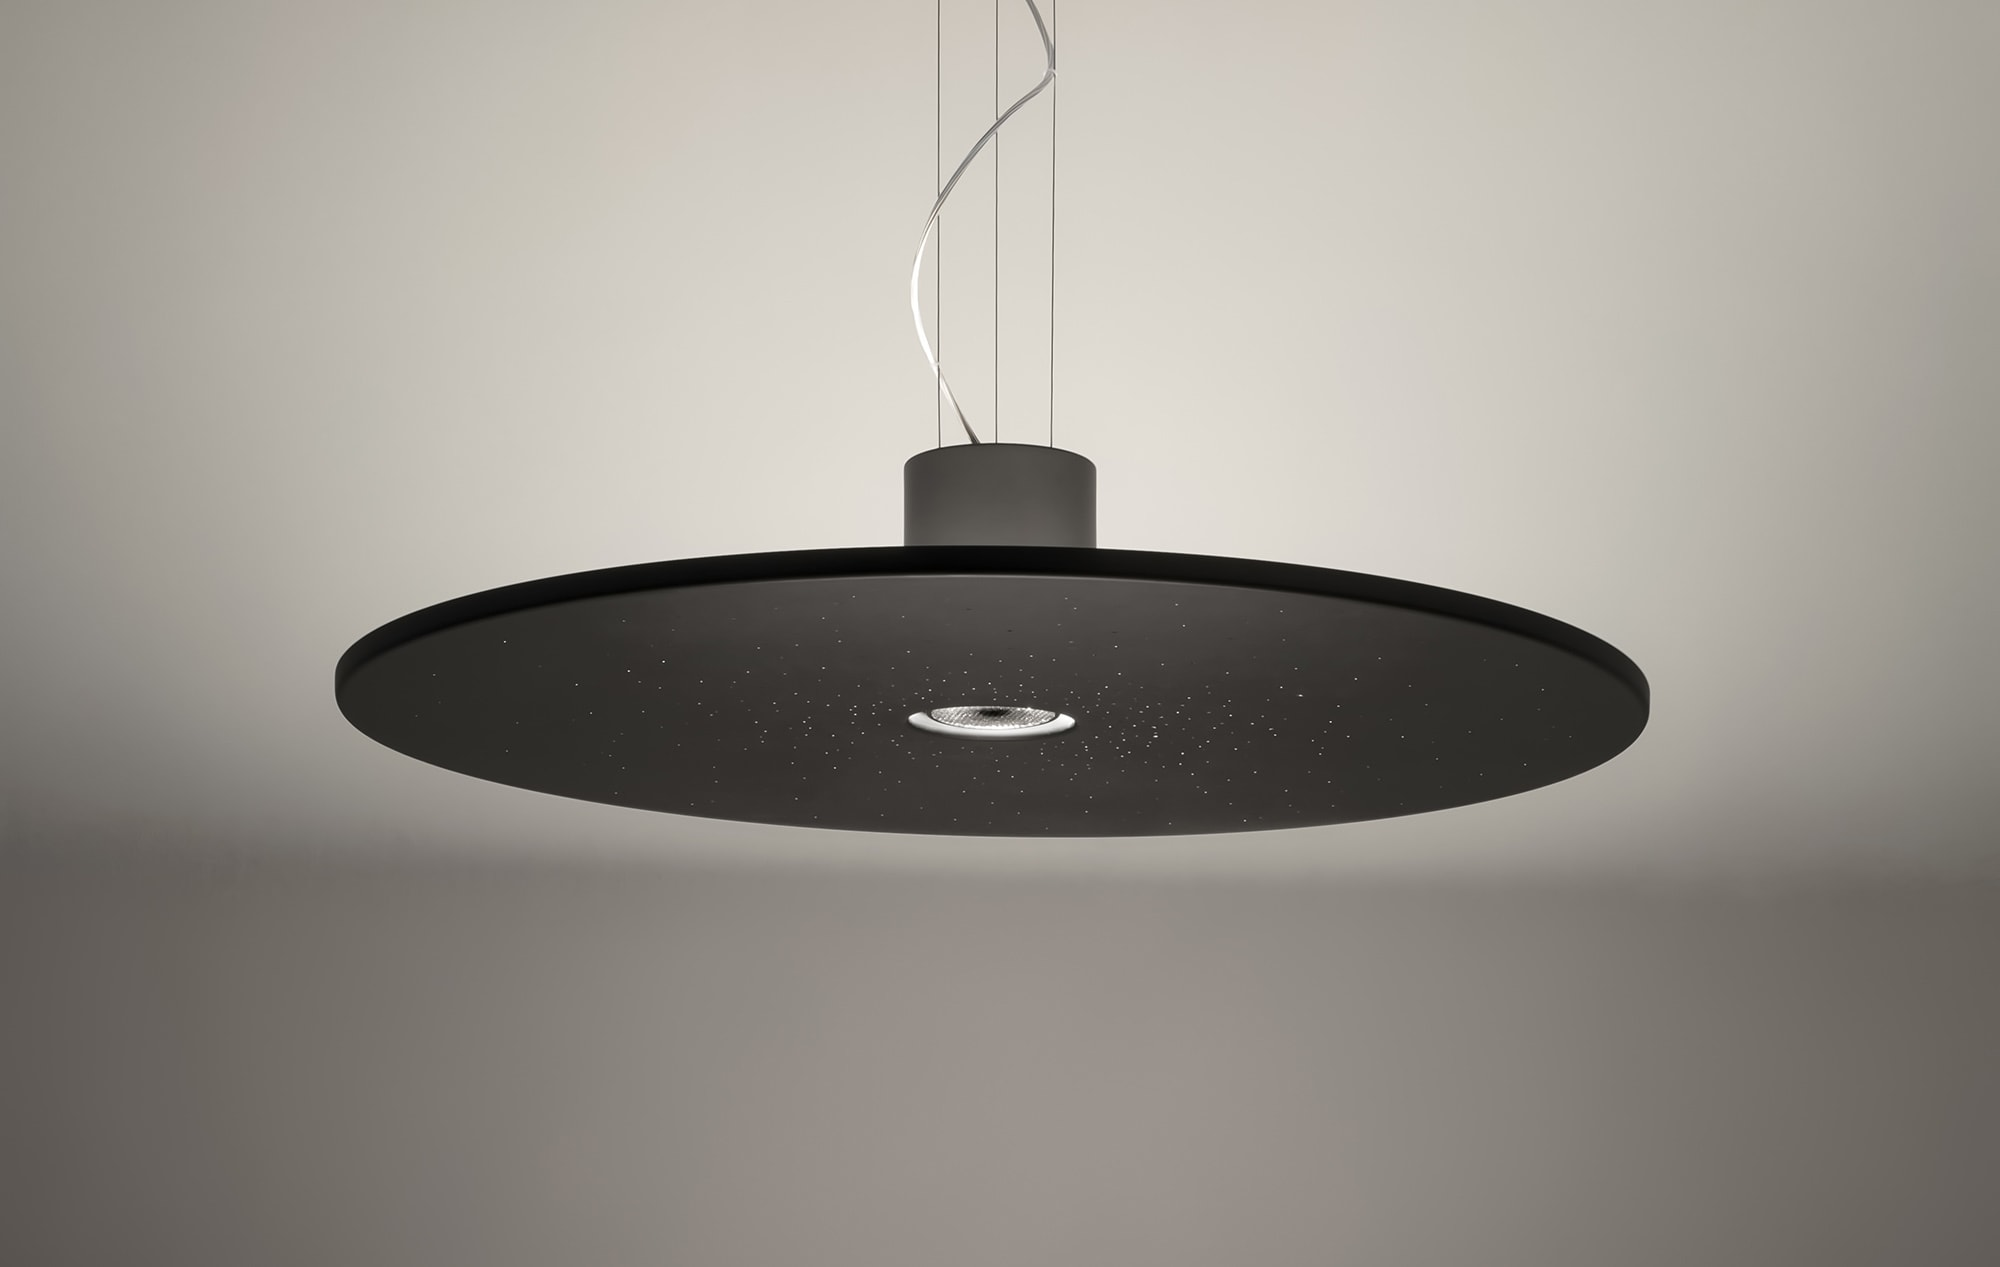 olev_andromeda_led_suspensio_cover